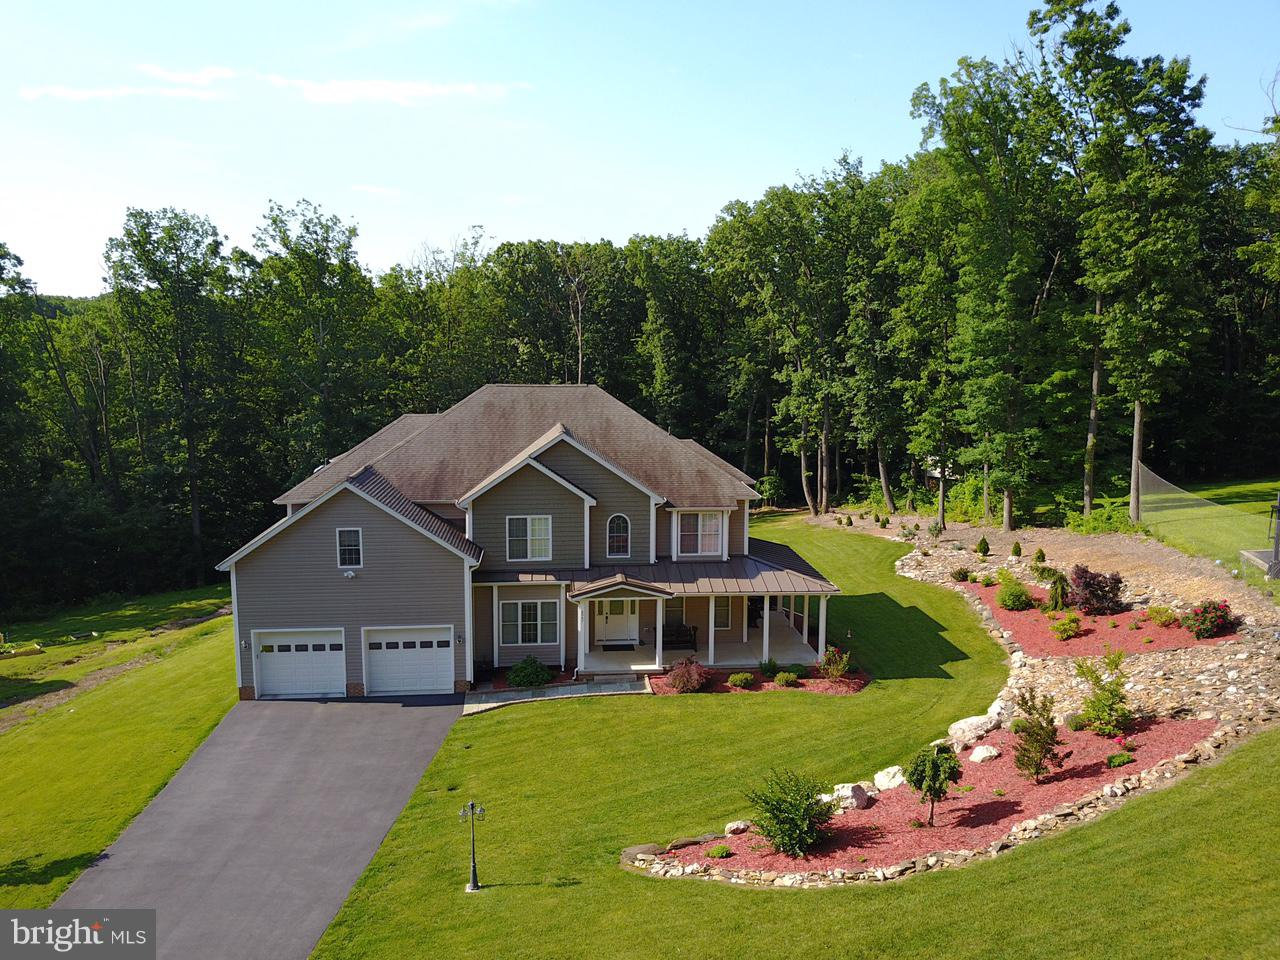 4947 OLD SWIMMING POOL ROAD, FREDERICK, MD 21703